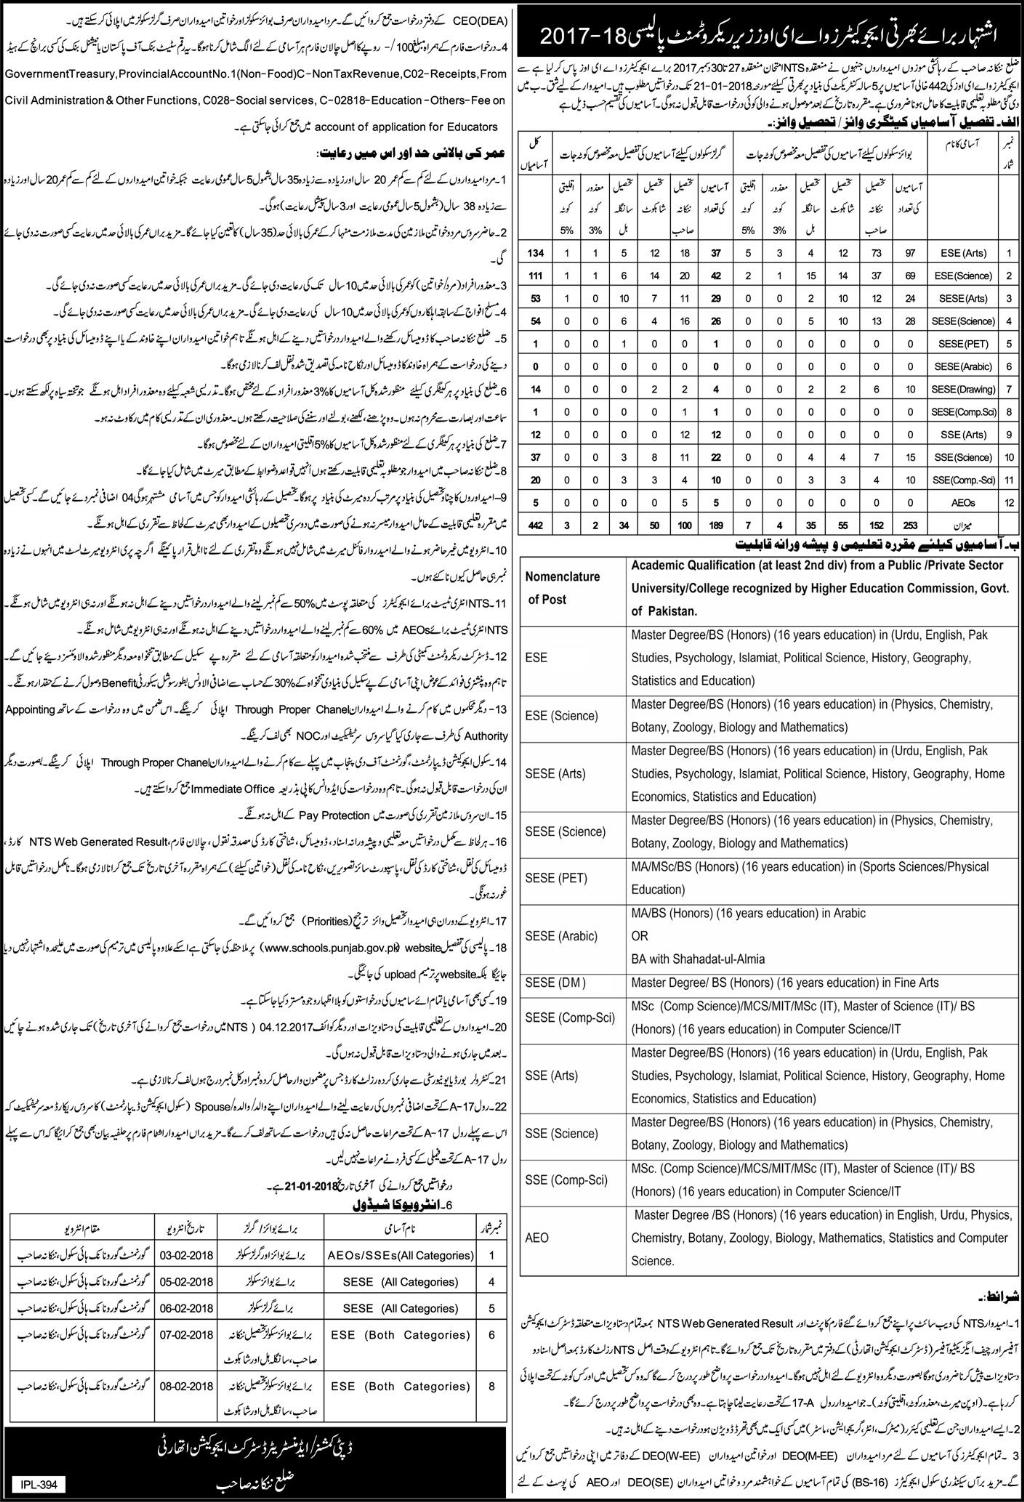 Punjab Education Department Educators/AEO Recruitment 2018